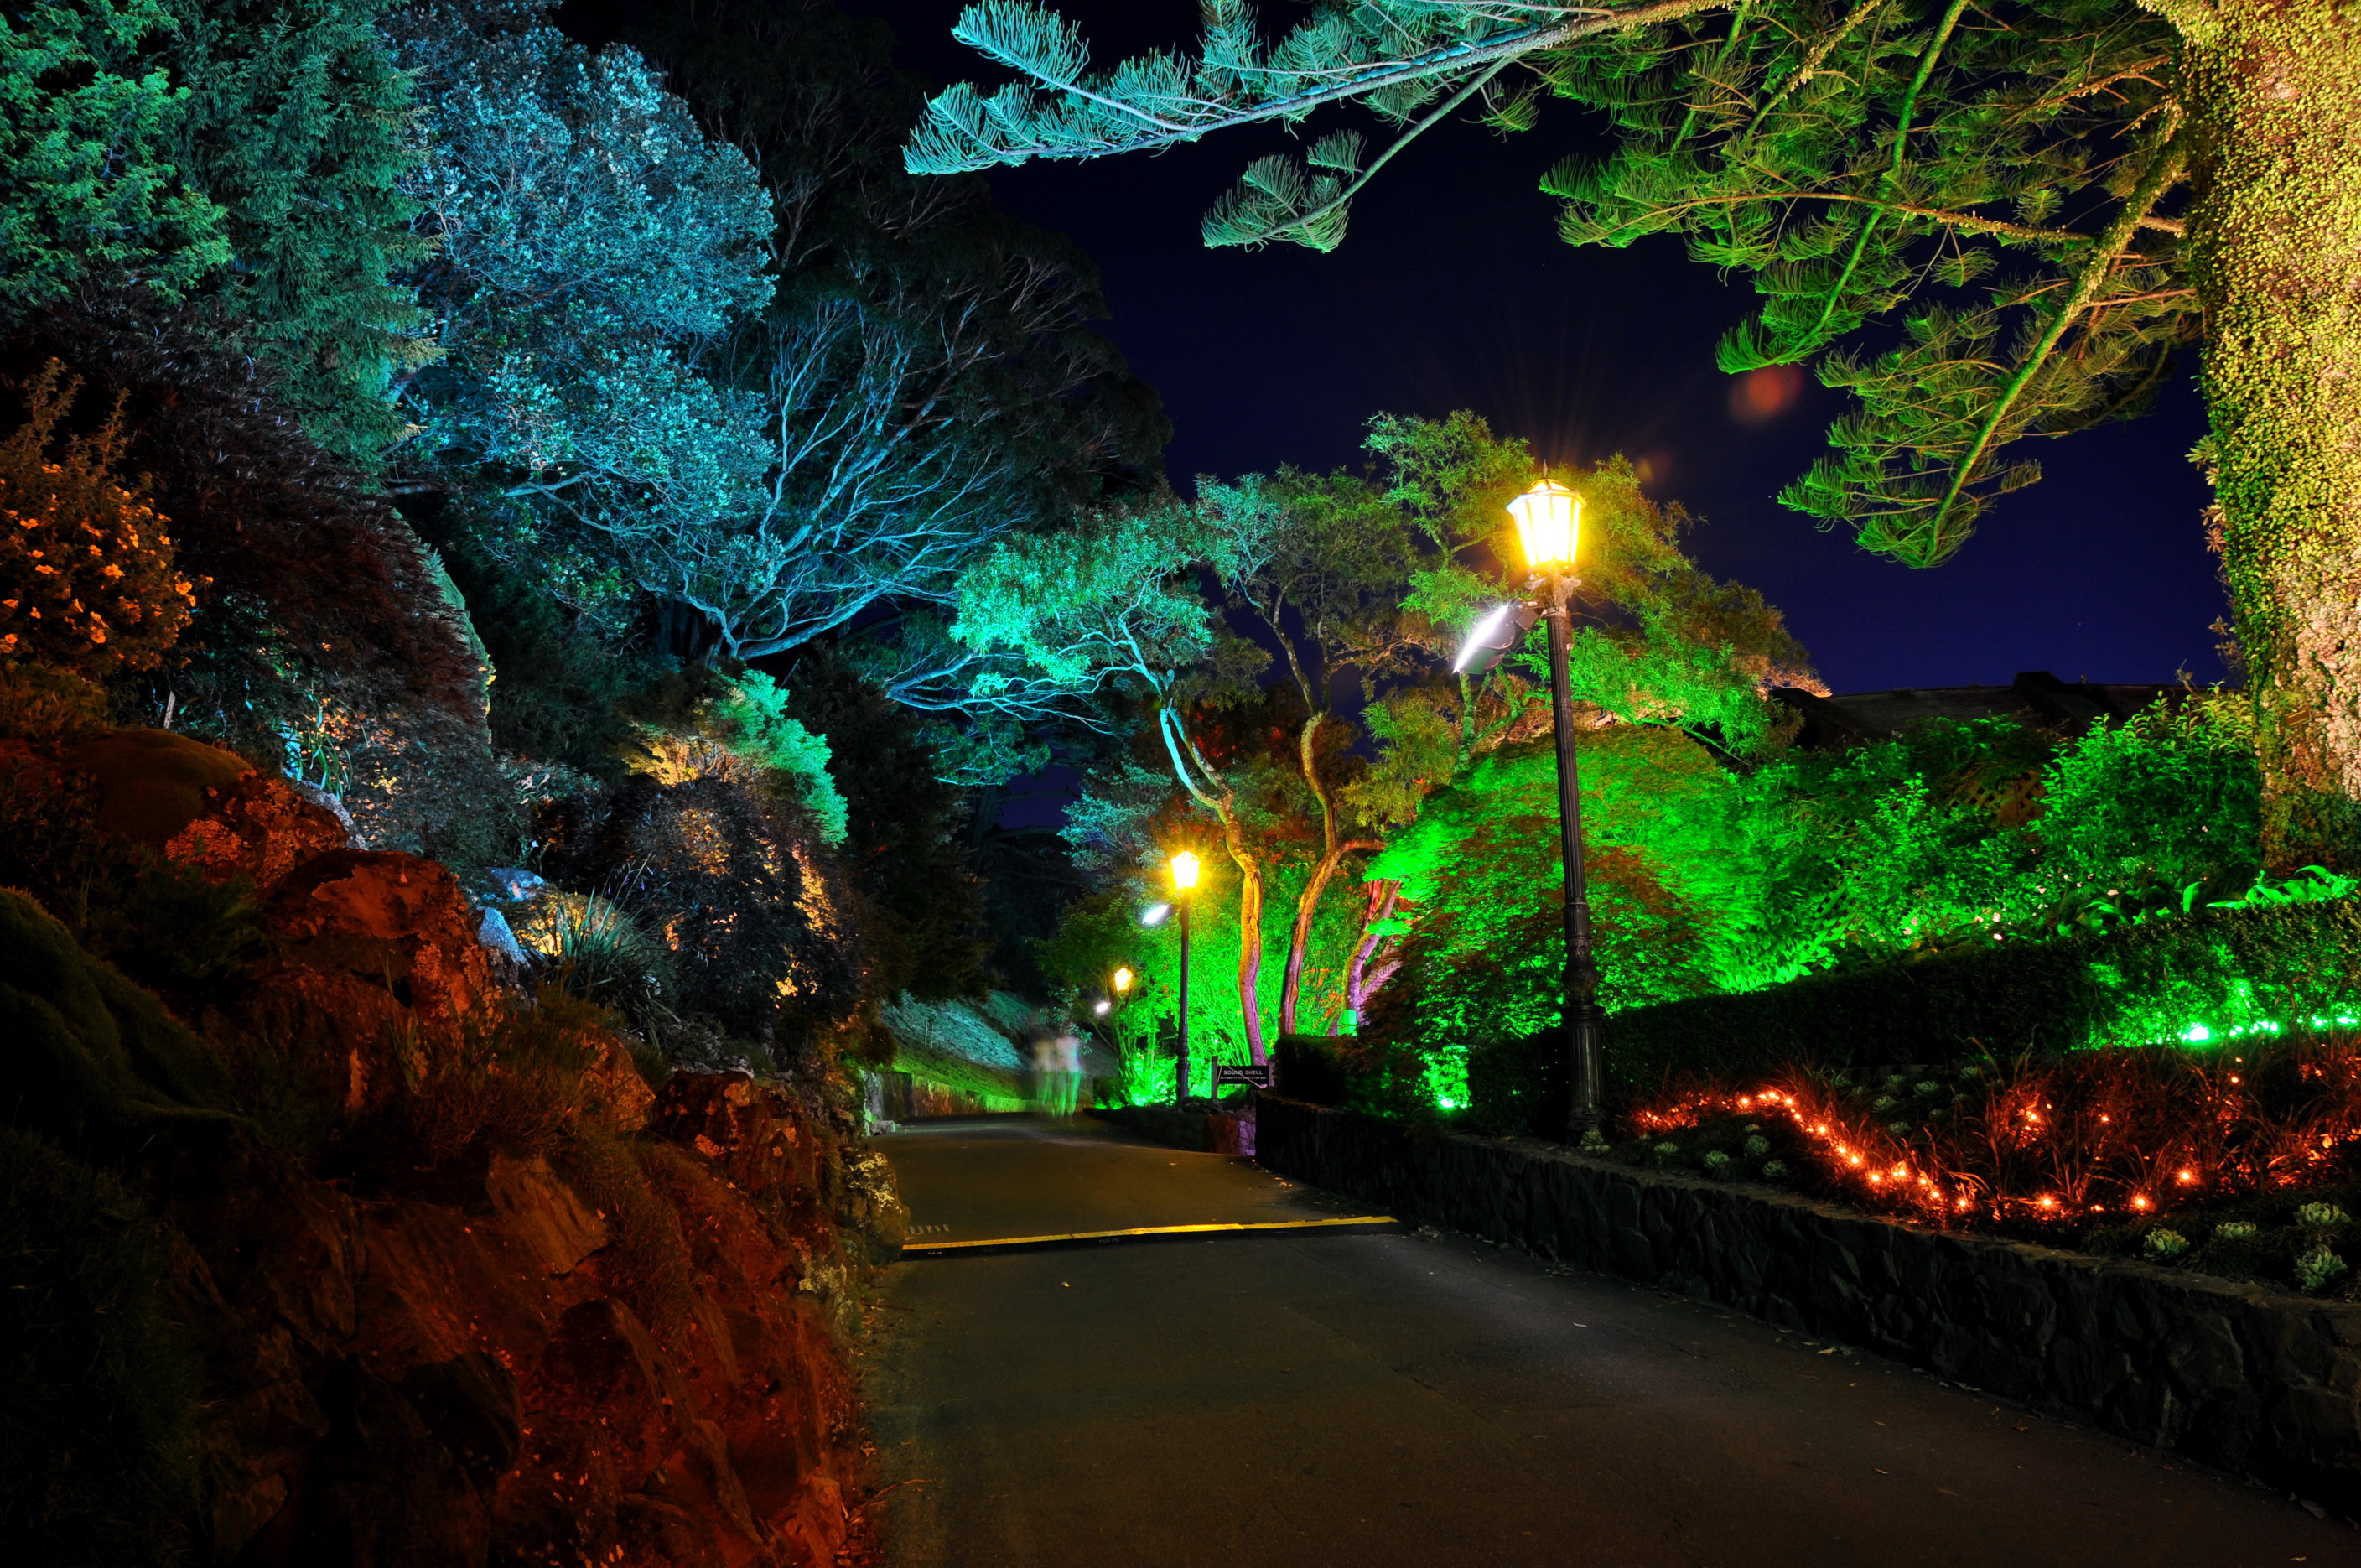 Gardens roads new zealand wellington botanical night street lights nature garden wallpaper - Night yard landscaping with outdoor lights ...